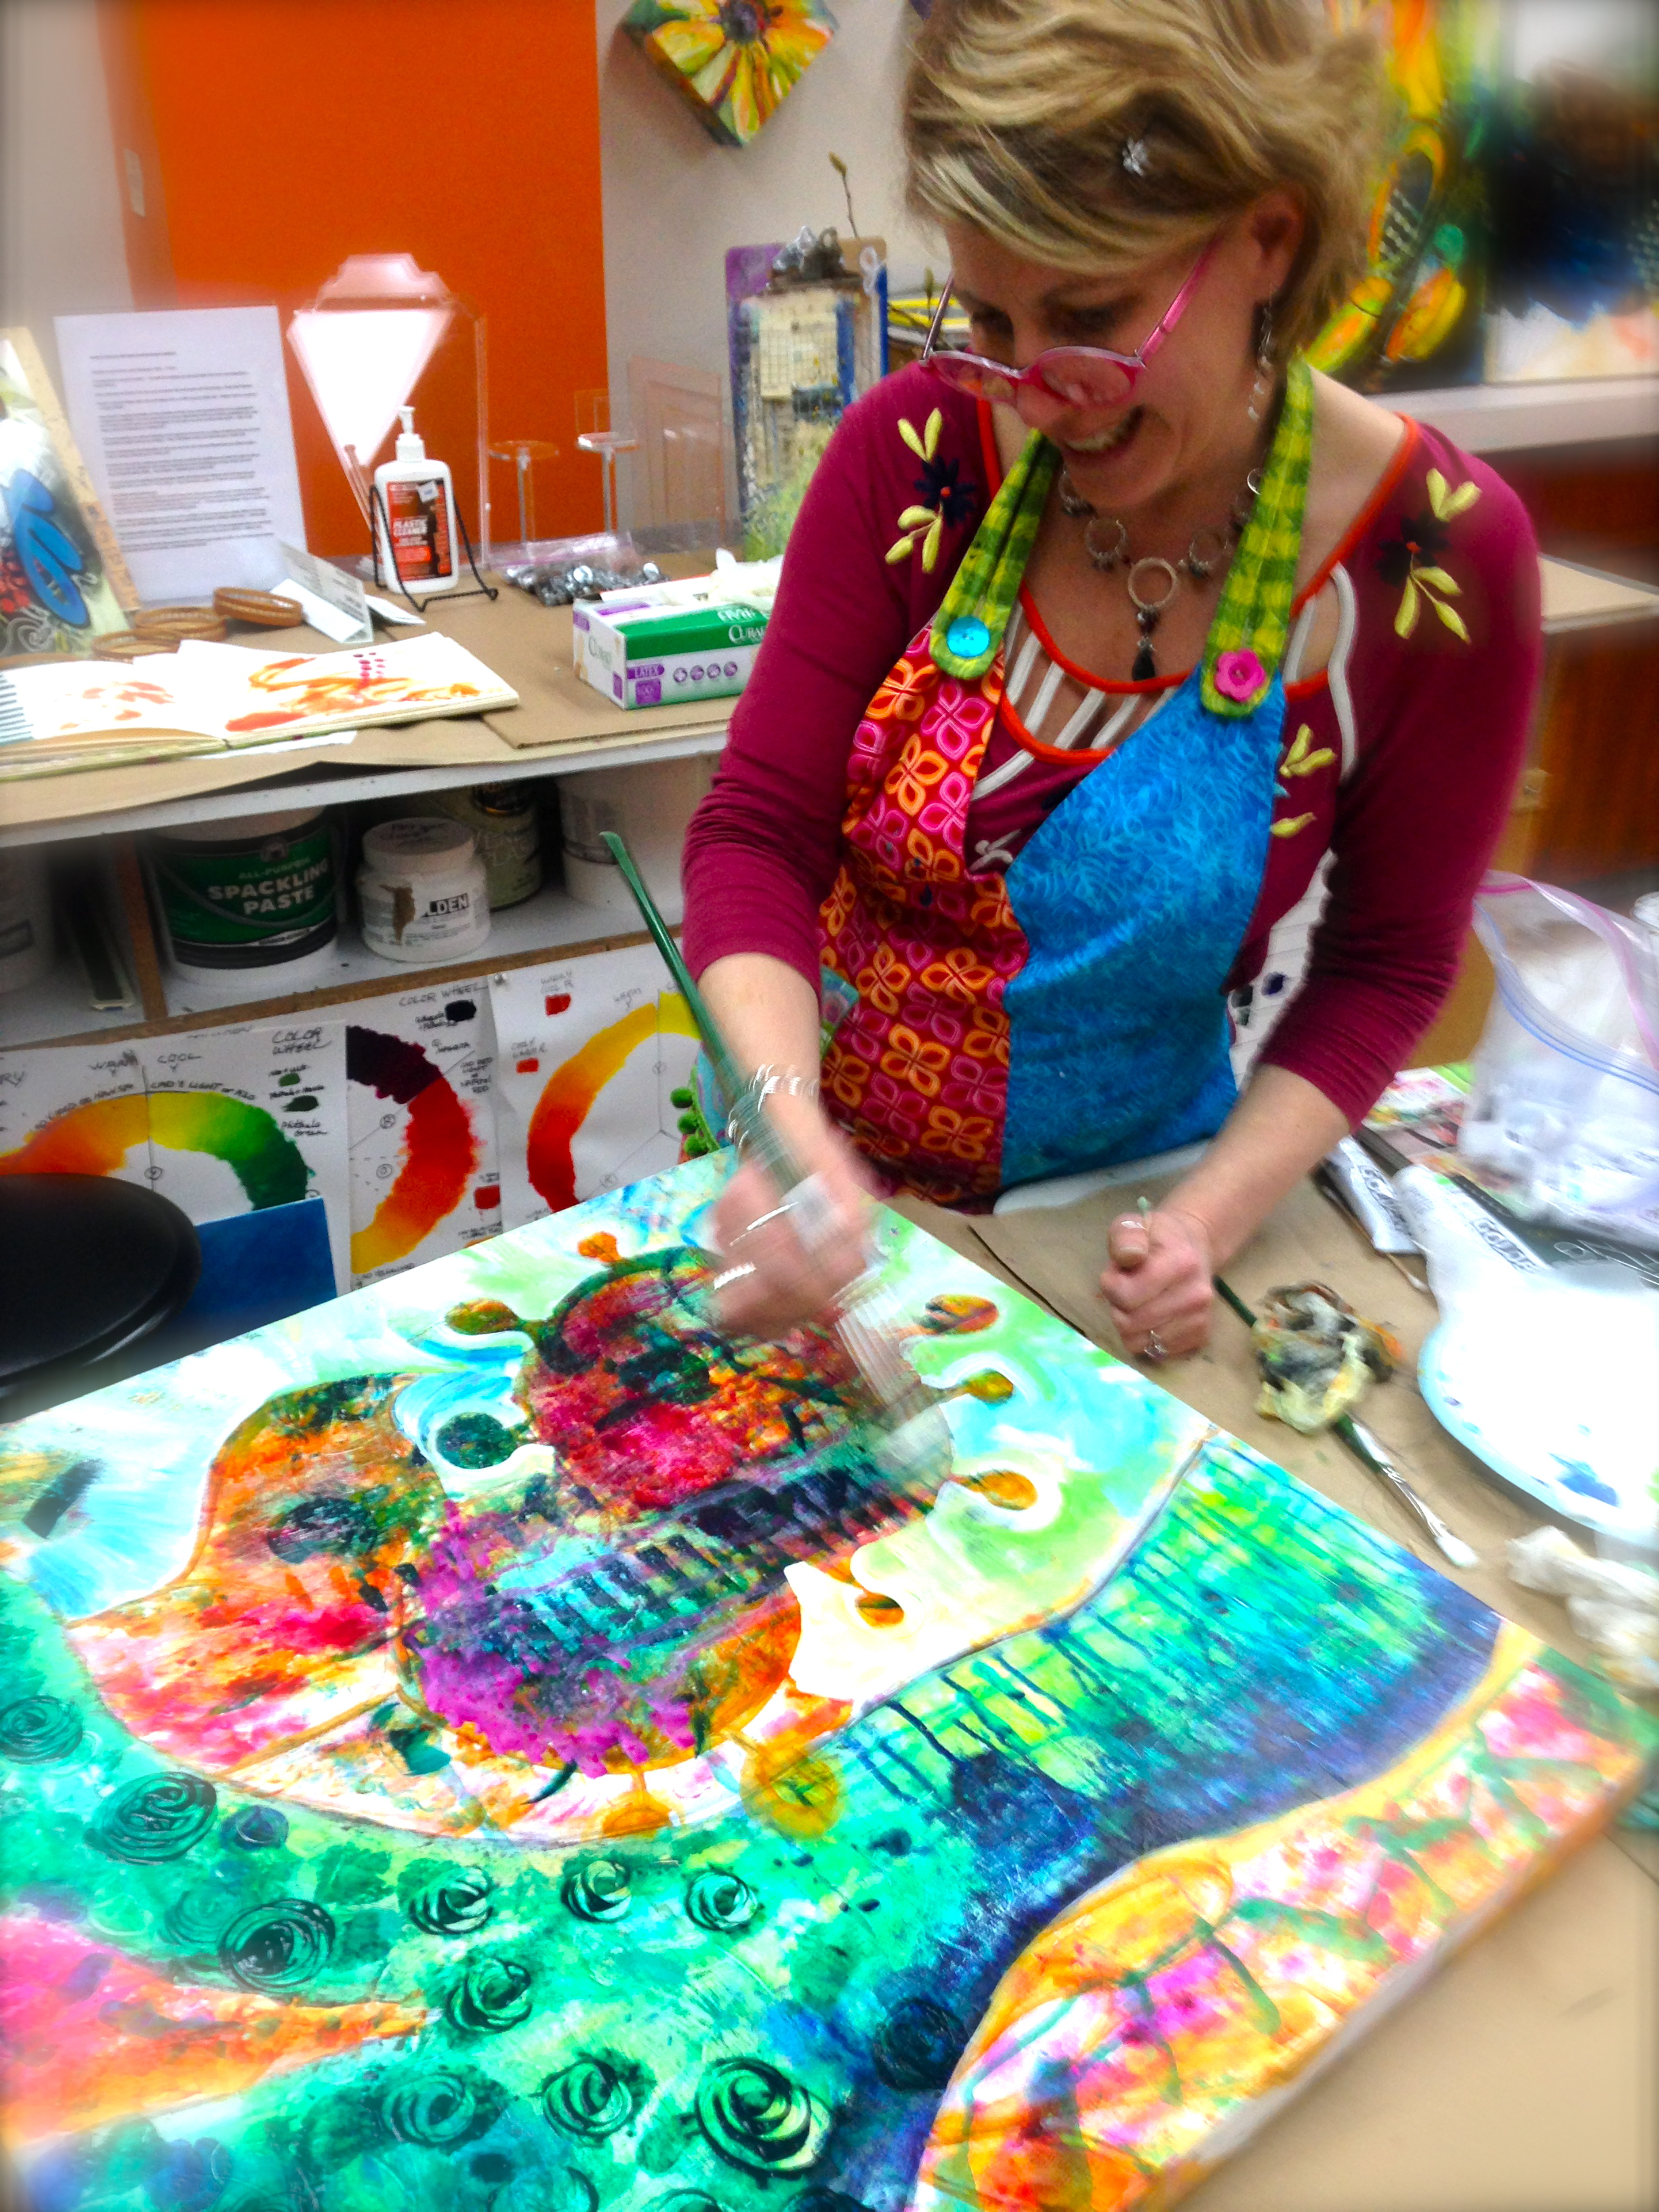 Sam painting an abstract self portrait at the ARTspot Studio.